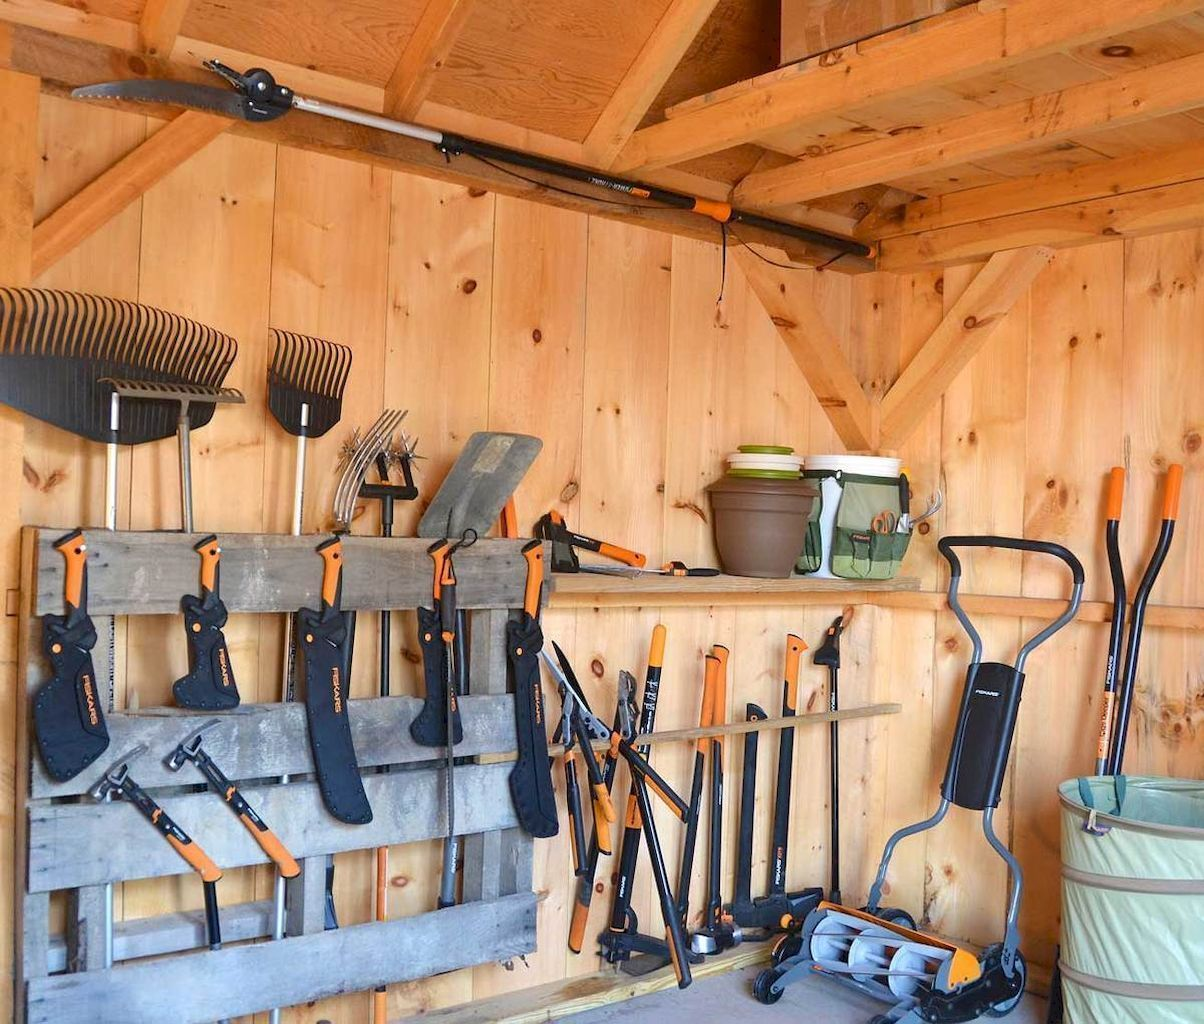 14 Creative DIY Garden Tool Storage Ideas